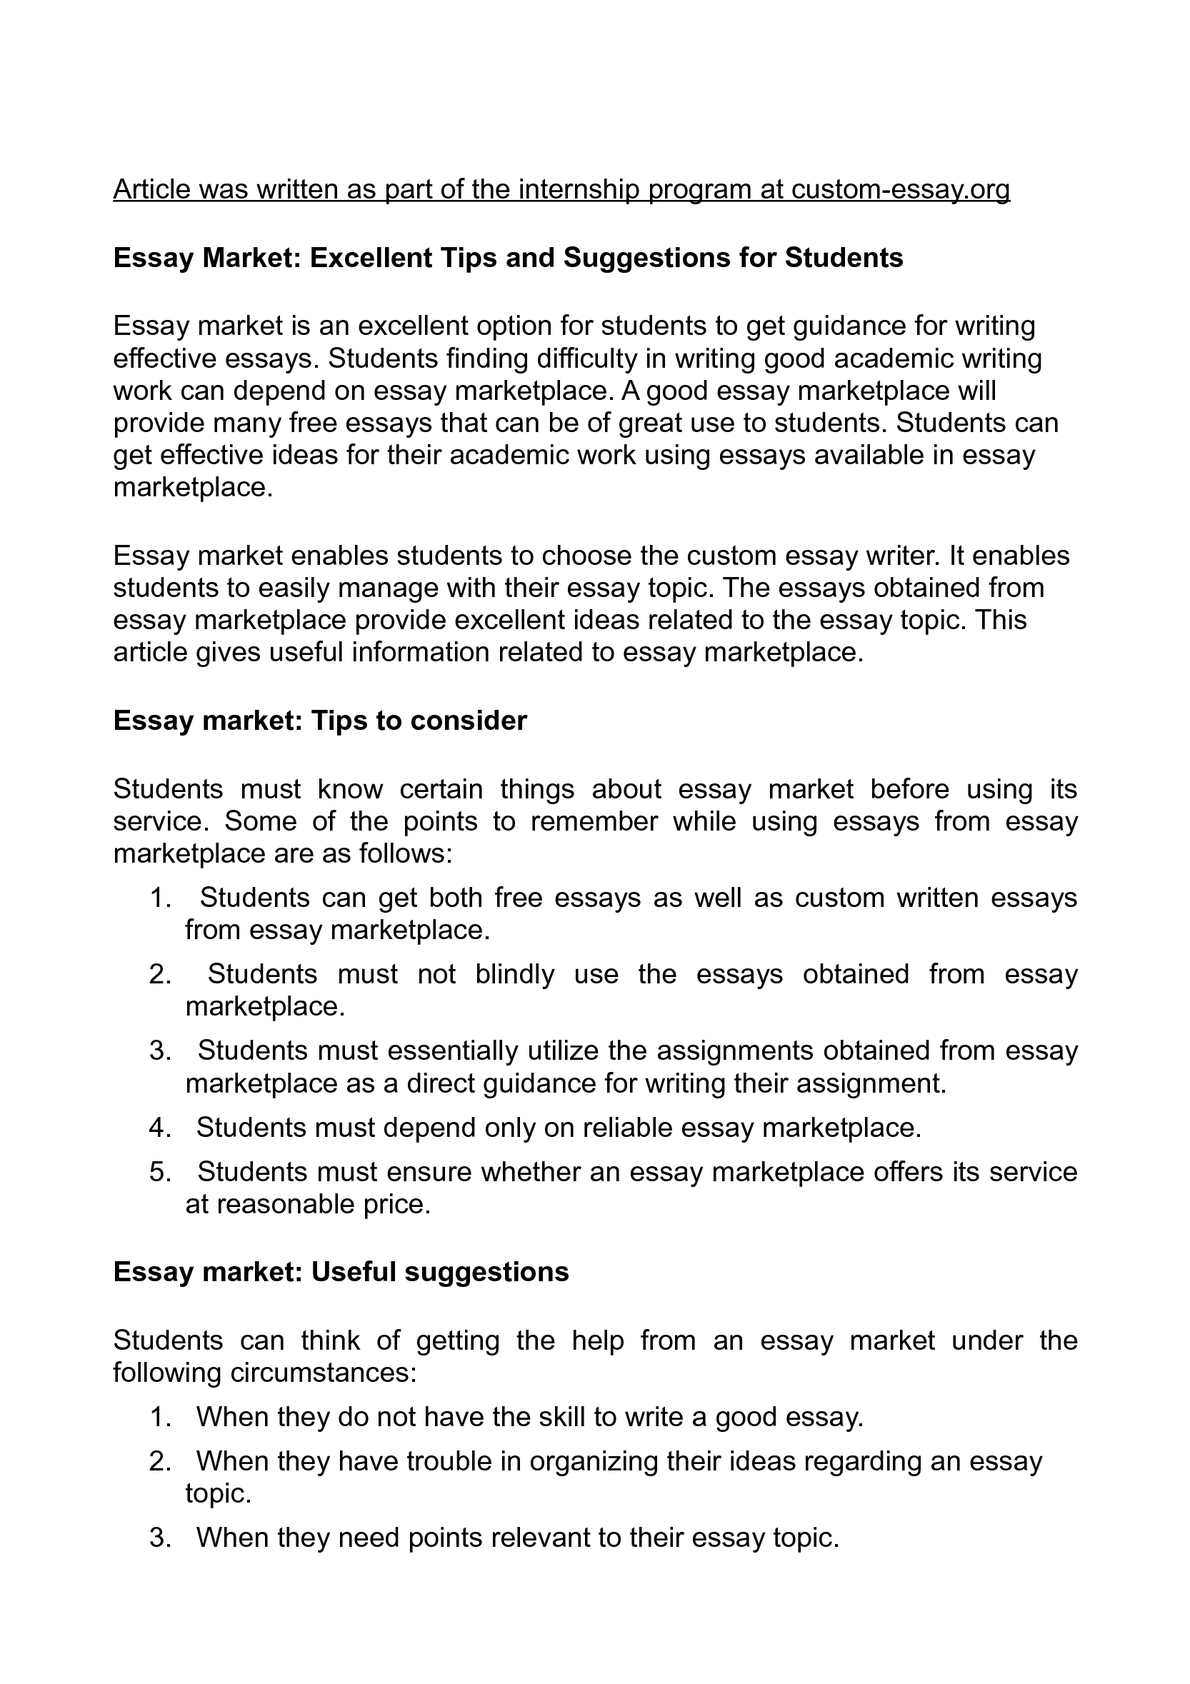 My English Essay  The Yellow Wallpaper Essay also My Hobby Essay In English Calamo  Essay Market Excellent Tips And Suggestions For Students Science And Literature Essay